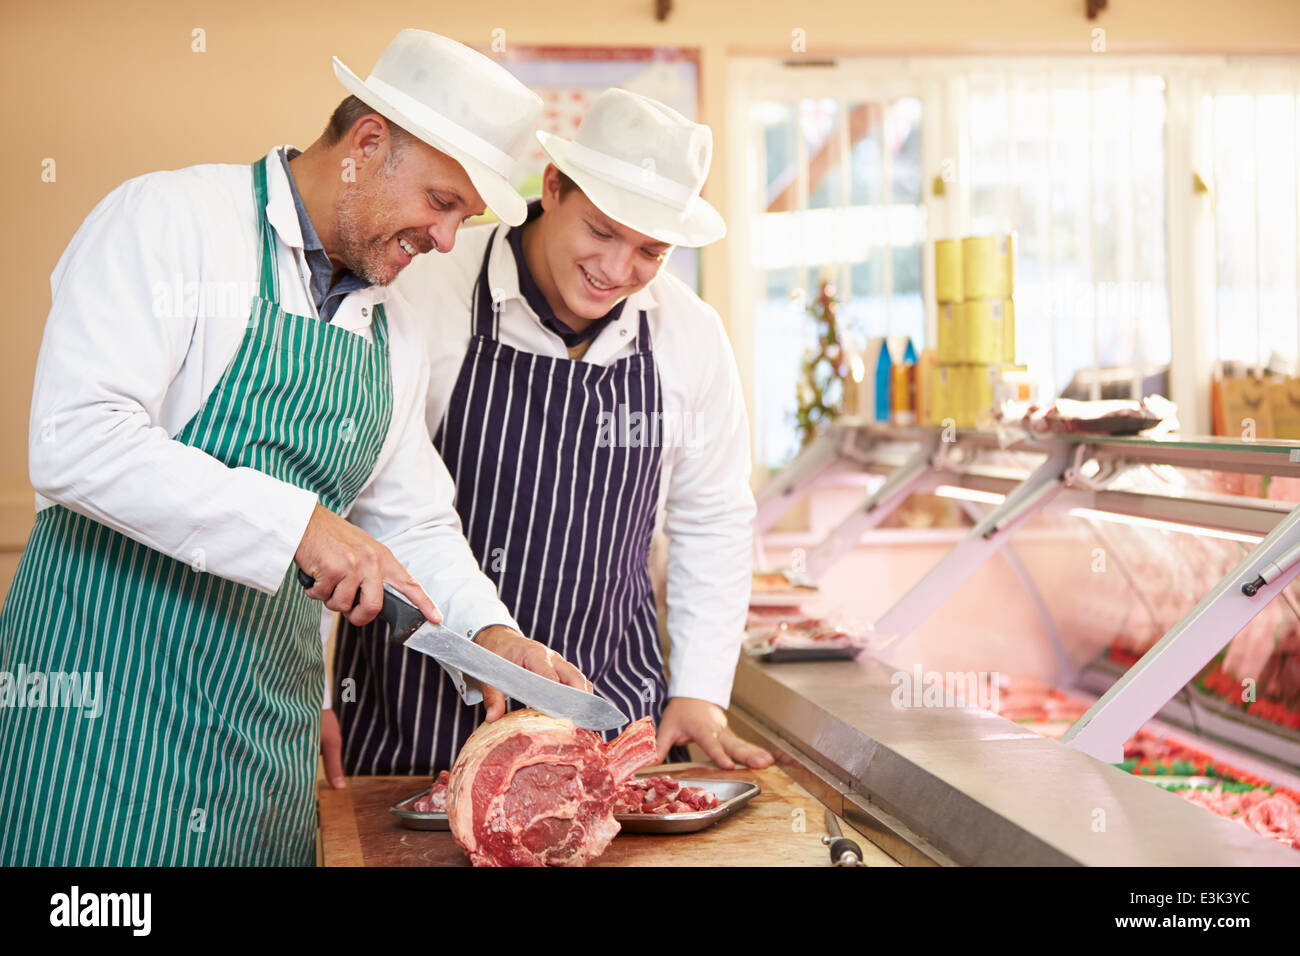 Butcher Teaching Apprentice How To Prepare Meat - Stock Image